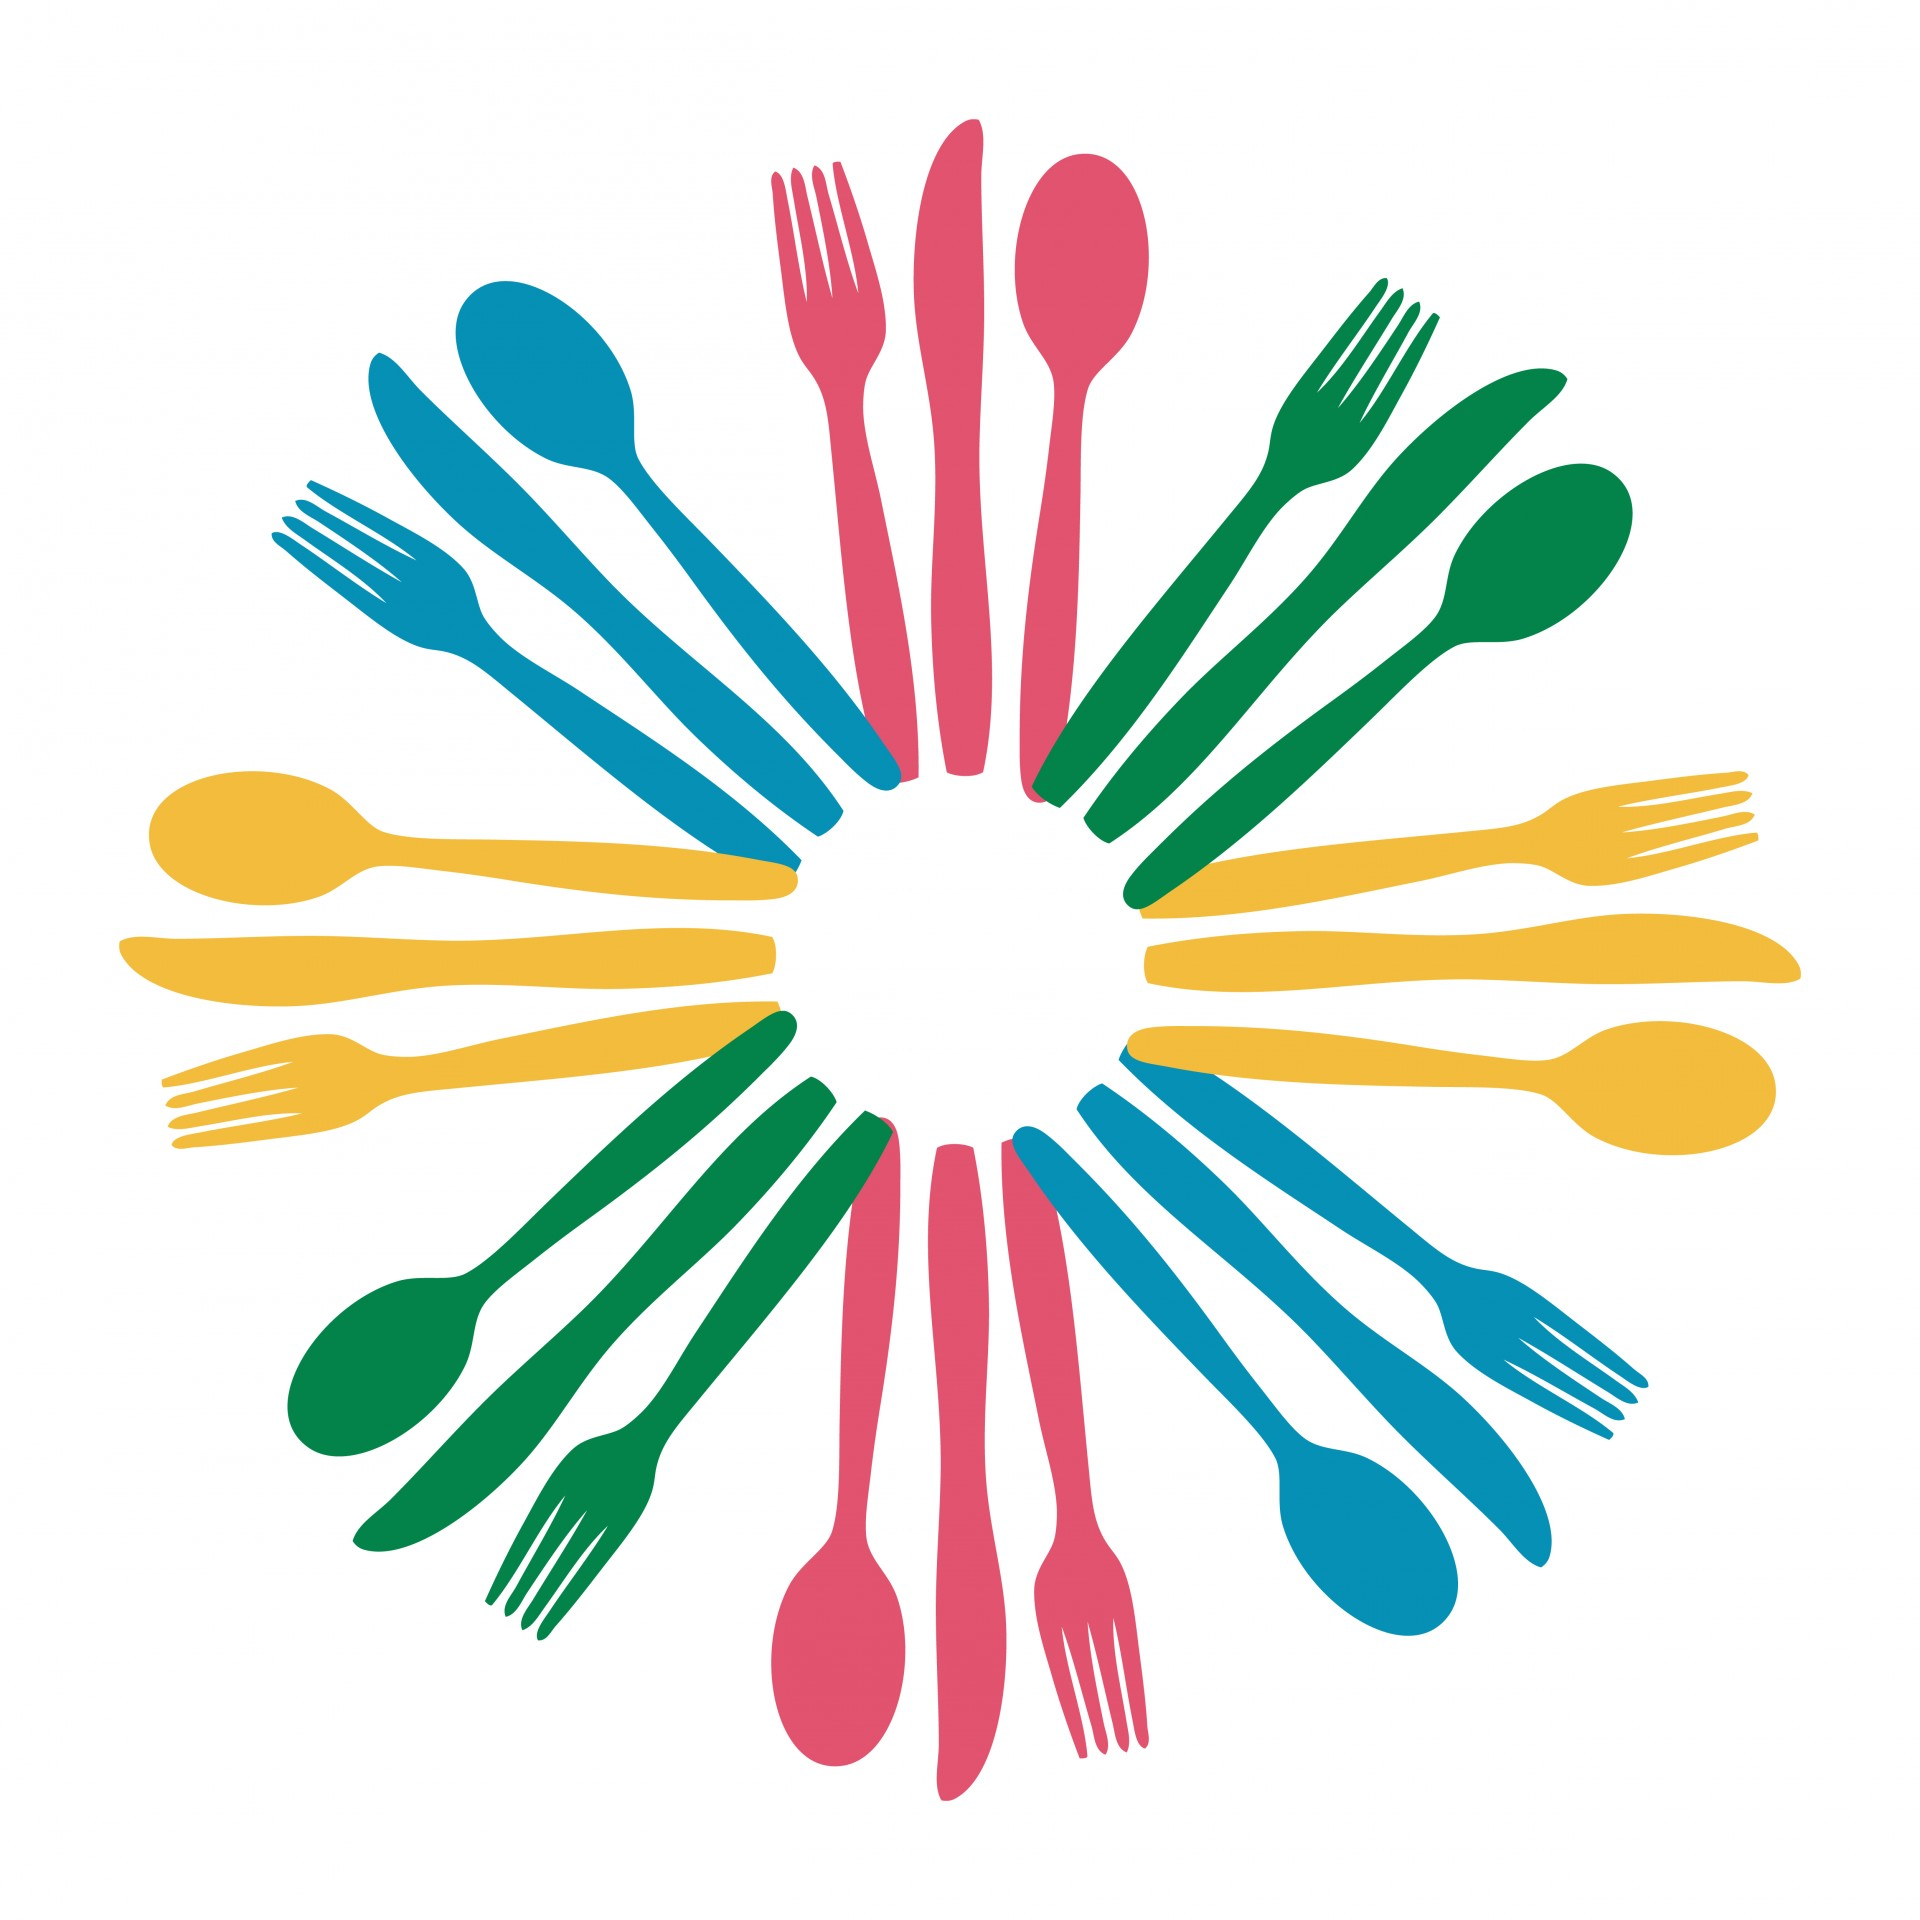 Free clipart for logo banner transparent download Colorful Cutlery Logo Clipart Free Stock Photo - Public Domain ... banner transparent download